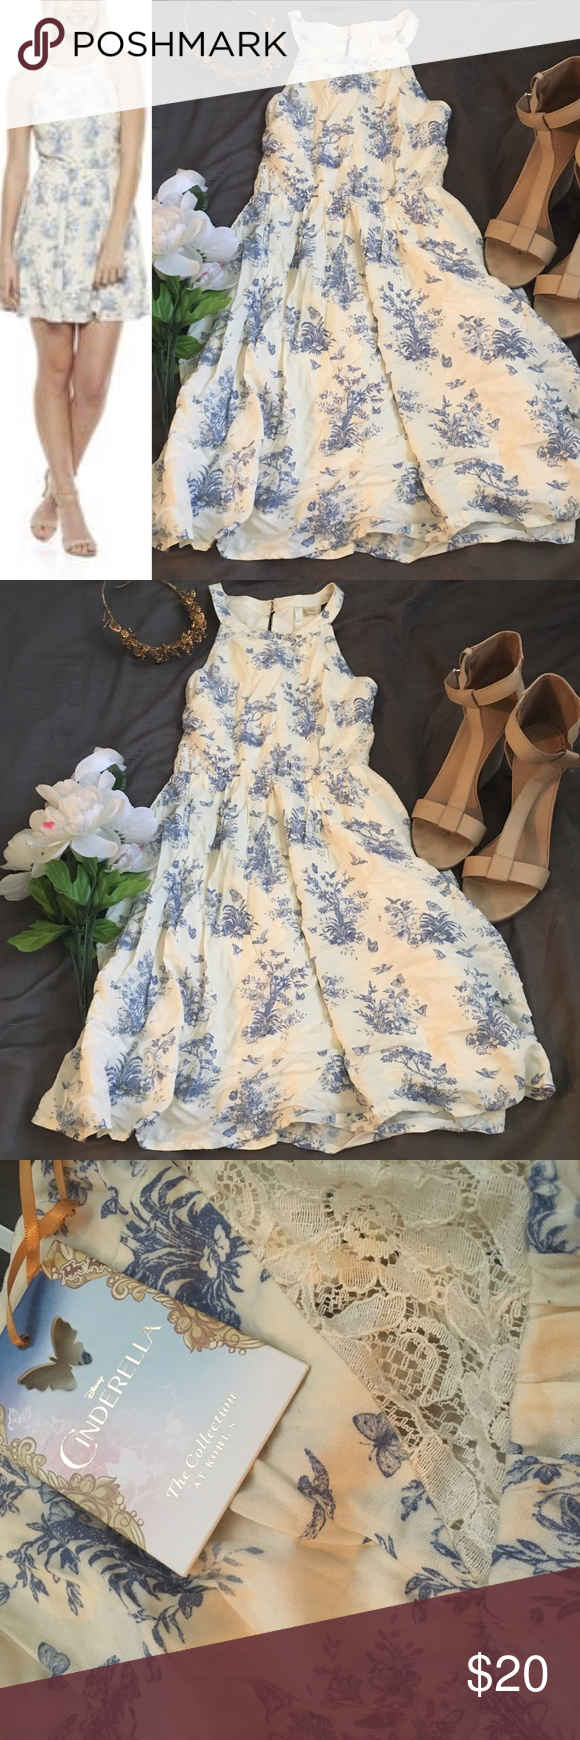 2cccaf62f Disney's Cinderella Collection Lace Halter Dress In a pretty blue and  off-white floral print. It's a perfect ladylike length! Minor makeup stain  at the ...